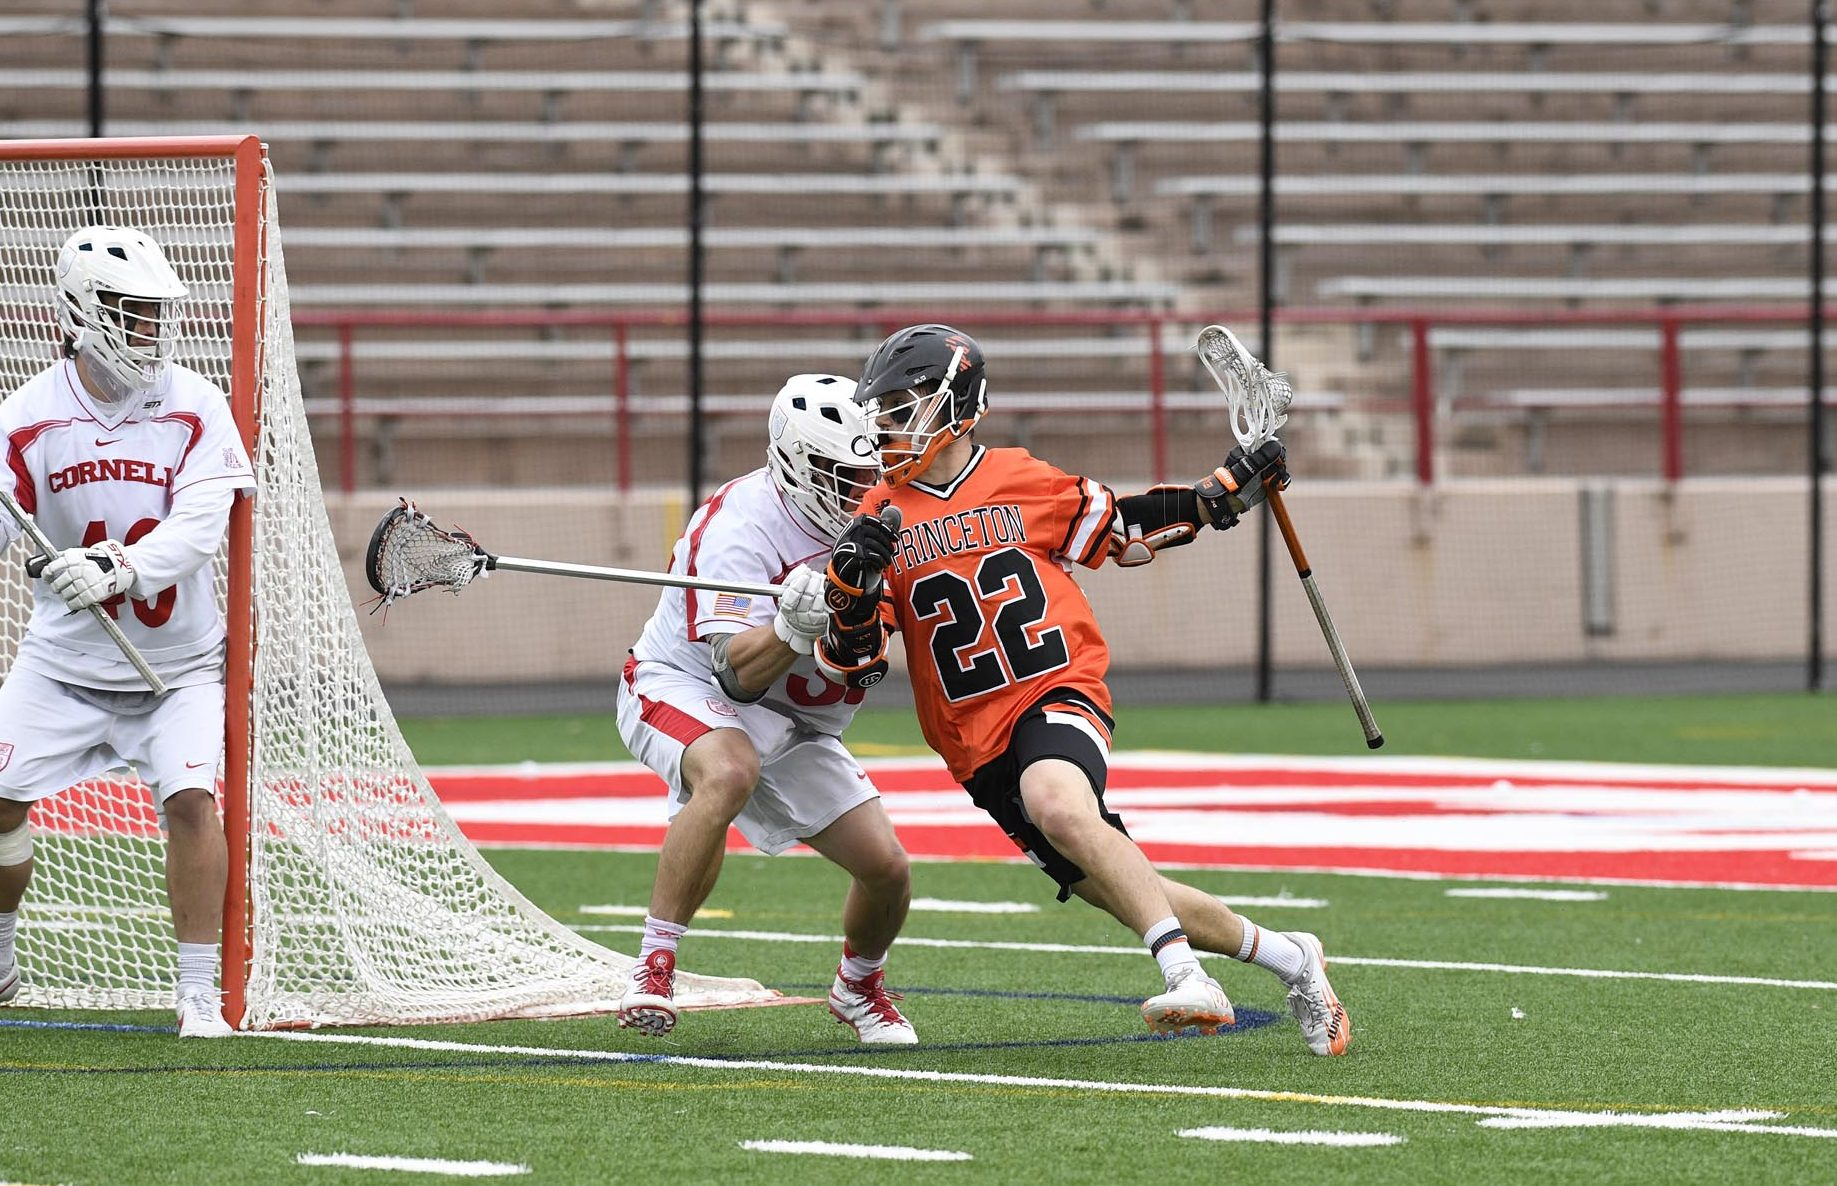 Michael Sowers of the Princeton Tigers fights off a Cornell Big Red defender on April 29, 2017. (Photo credit: Robert Goldstein)